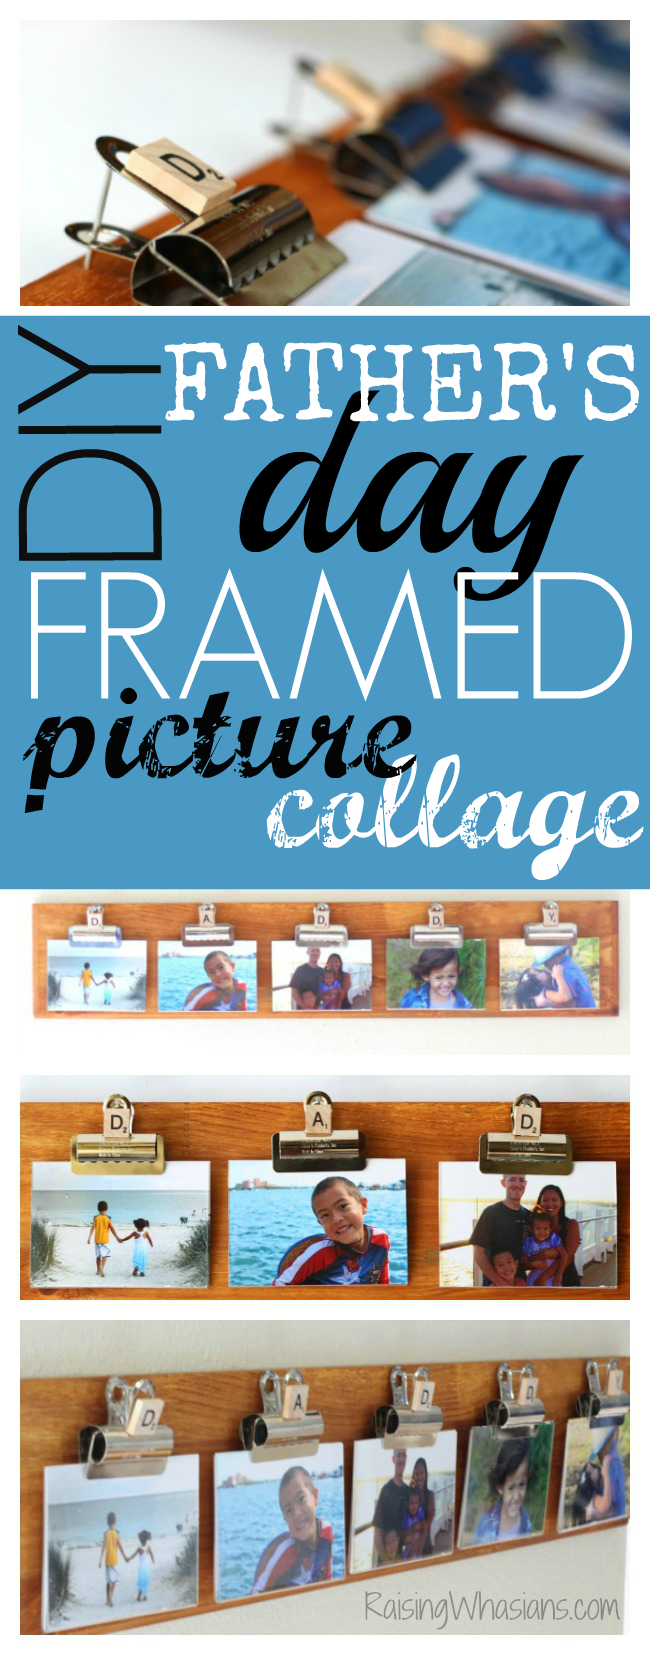 DIY father's day framed picture collage